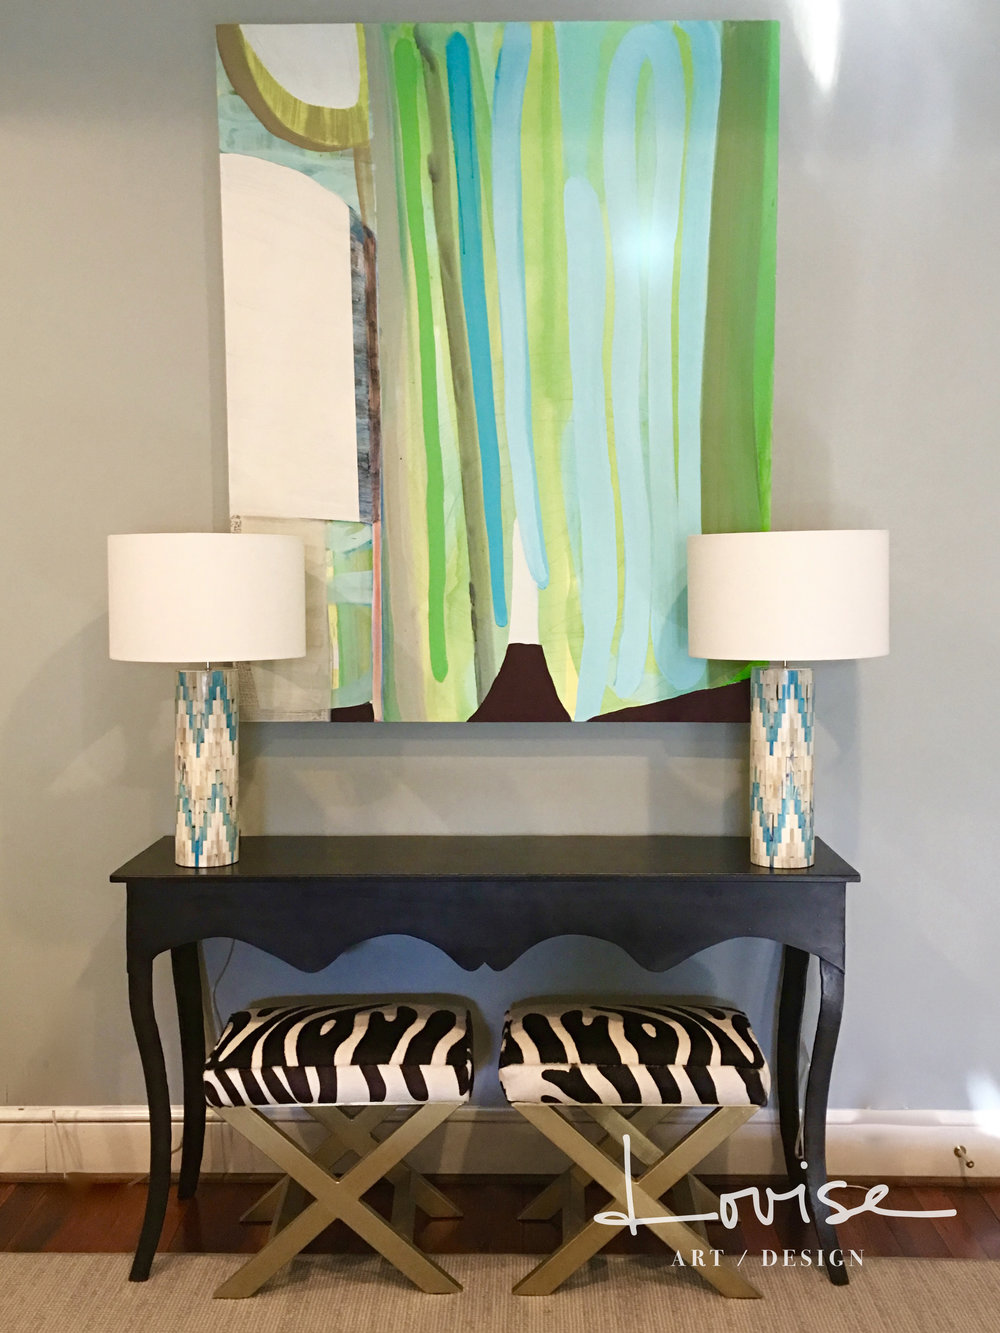 Black console with bone inlay lamps and abstract painting